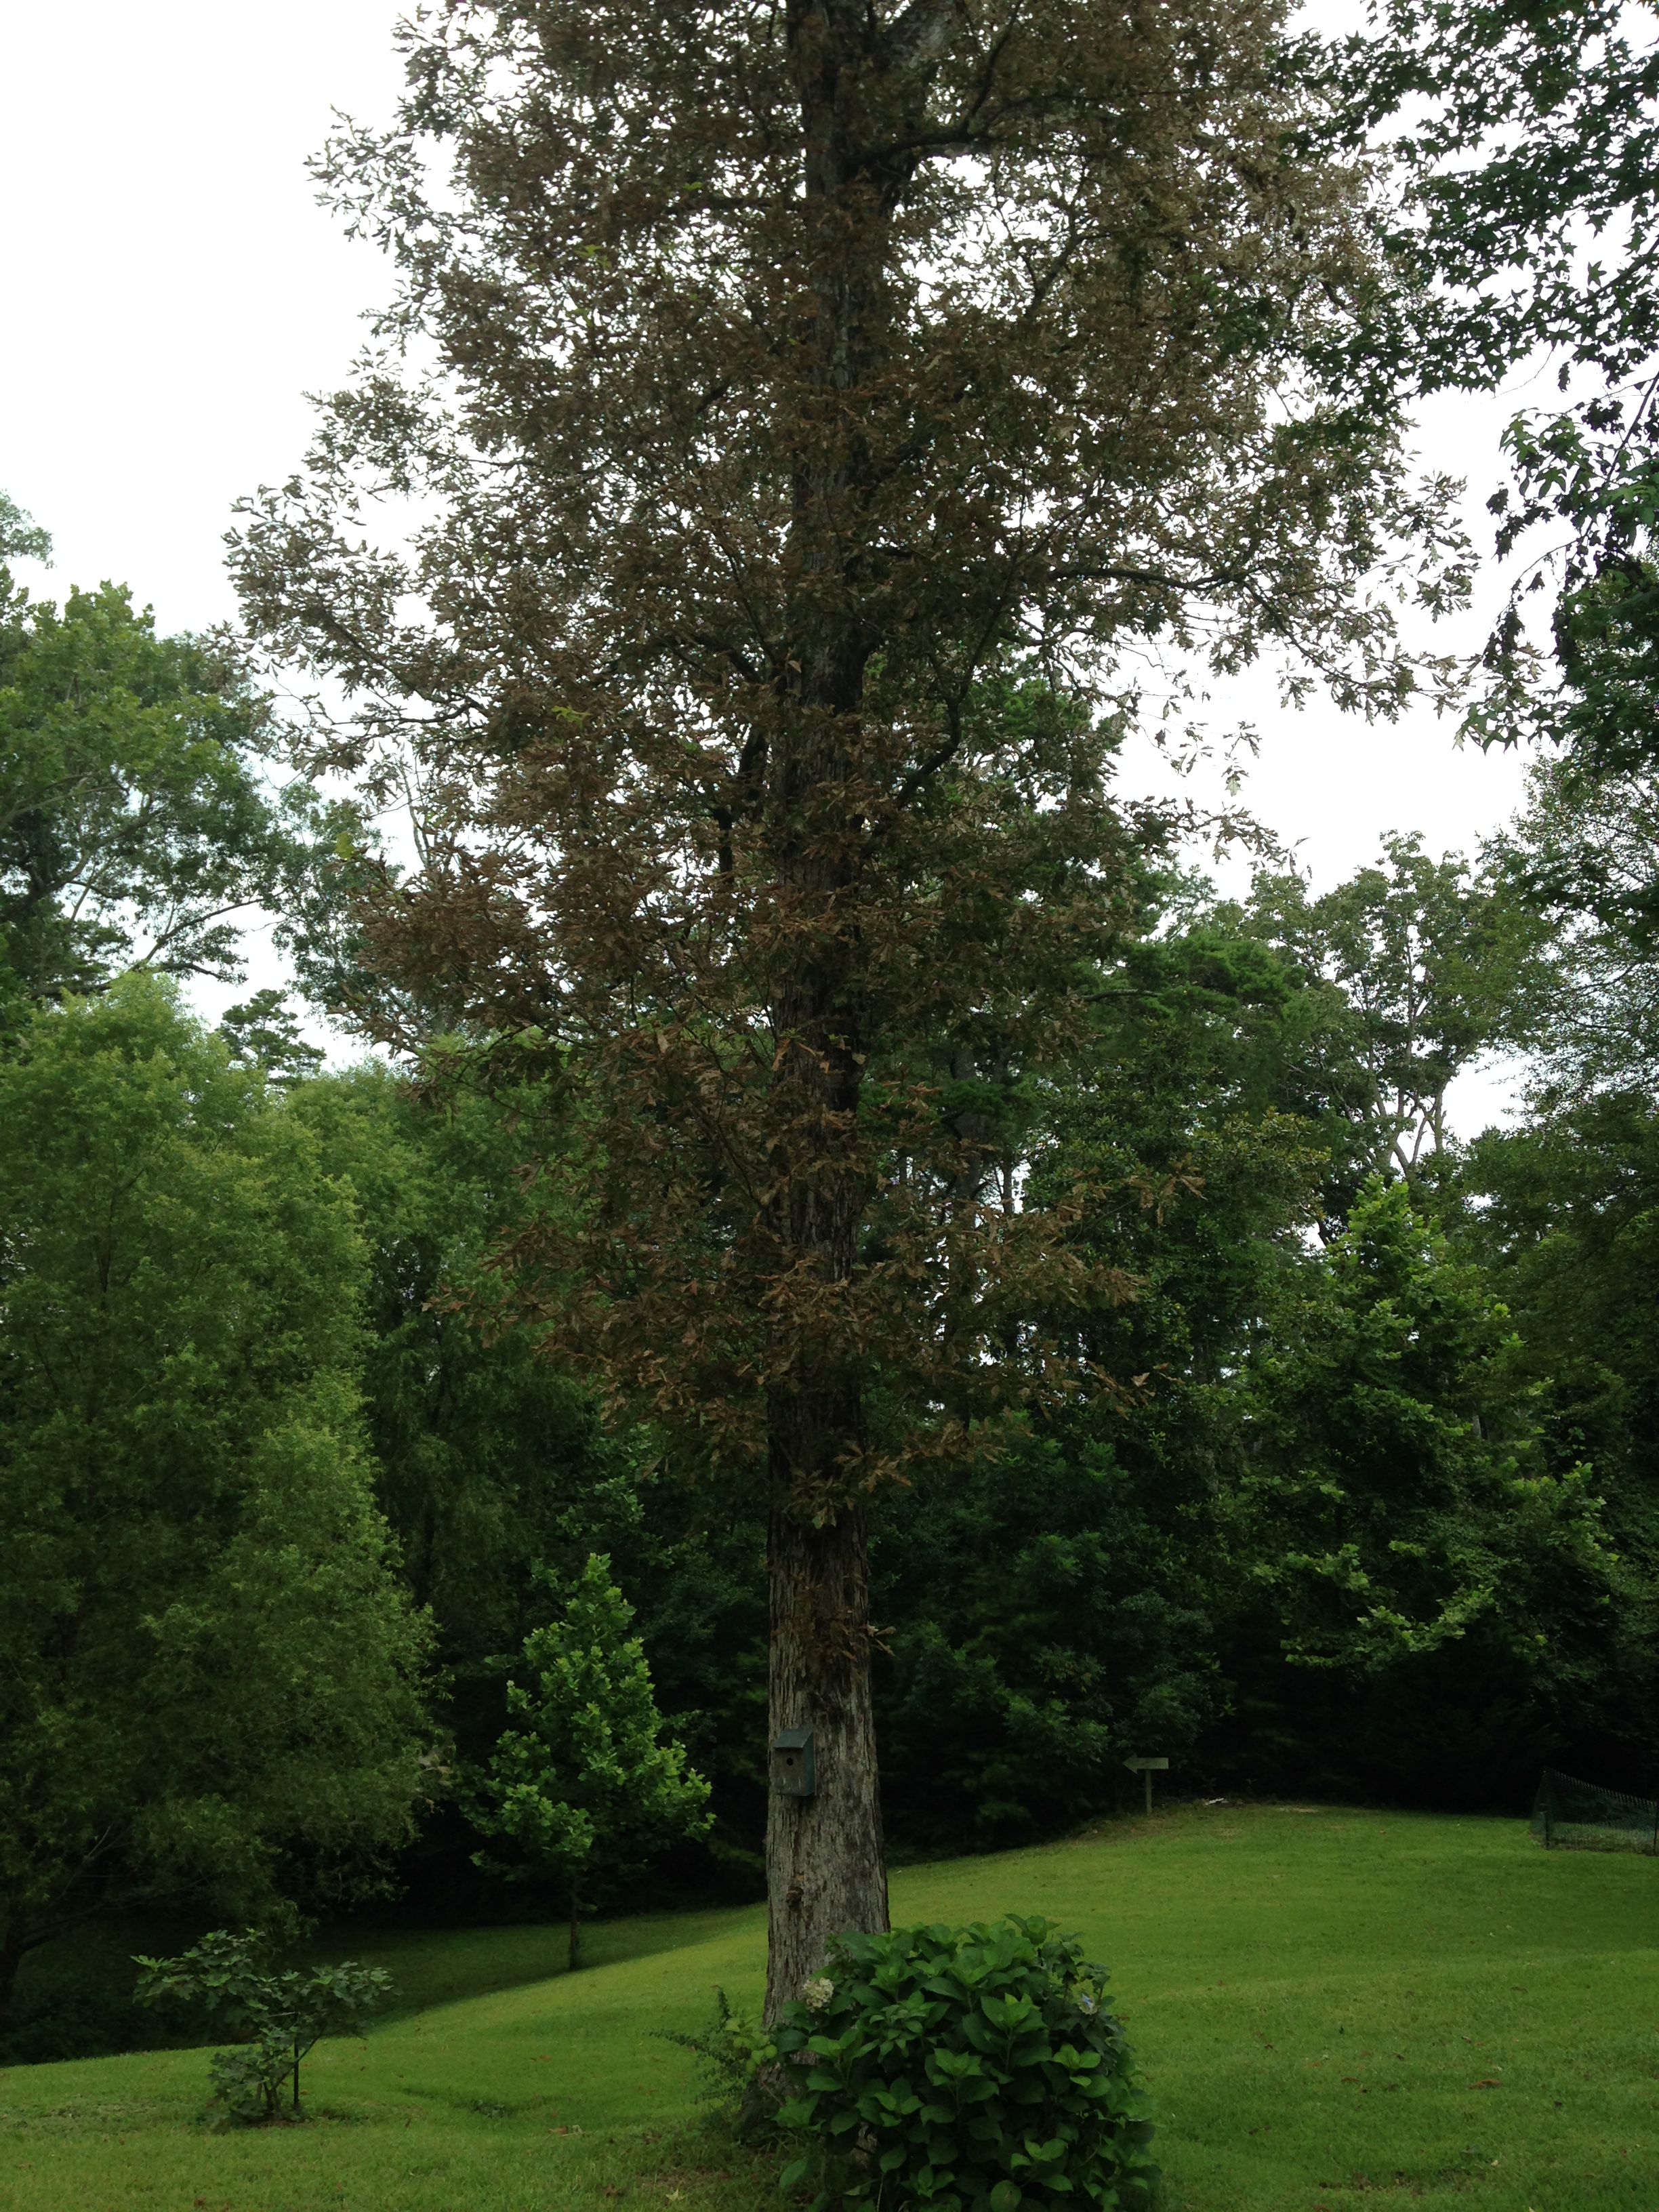 Picture of white oak tree with damaged foliage.